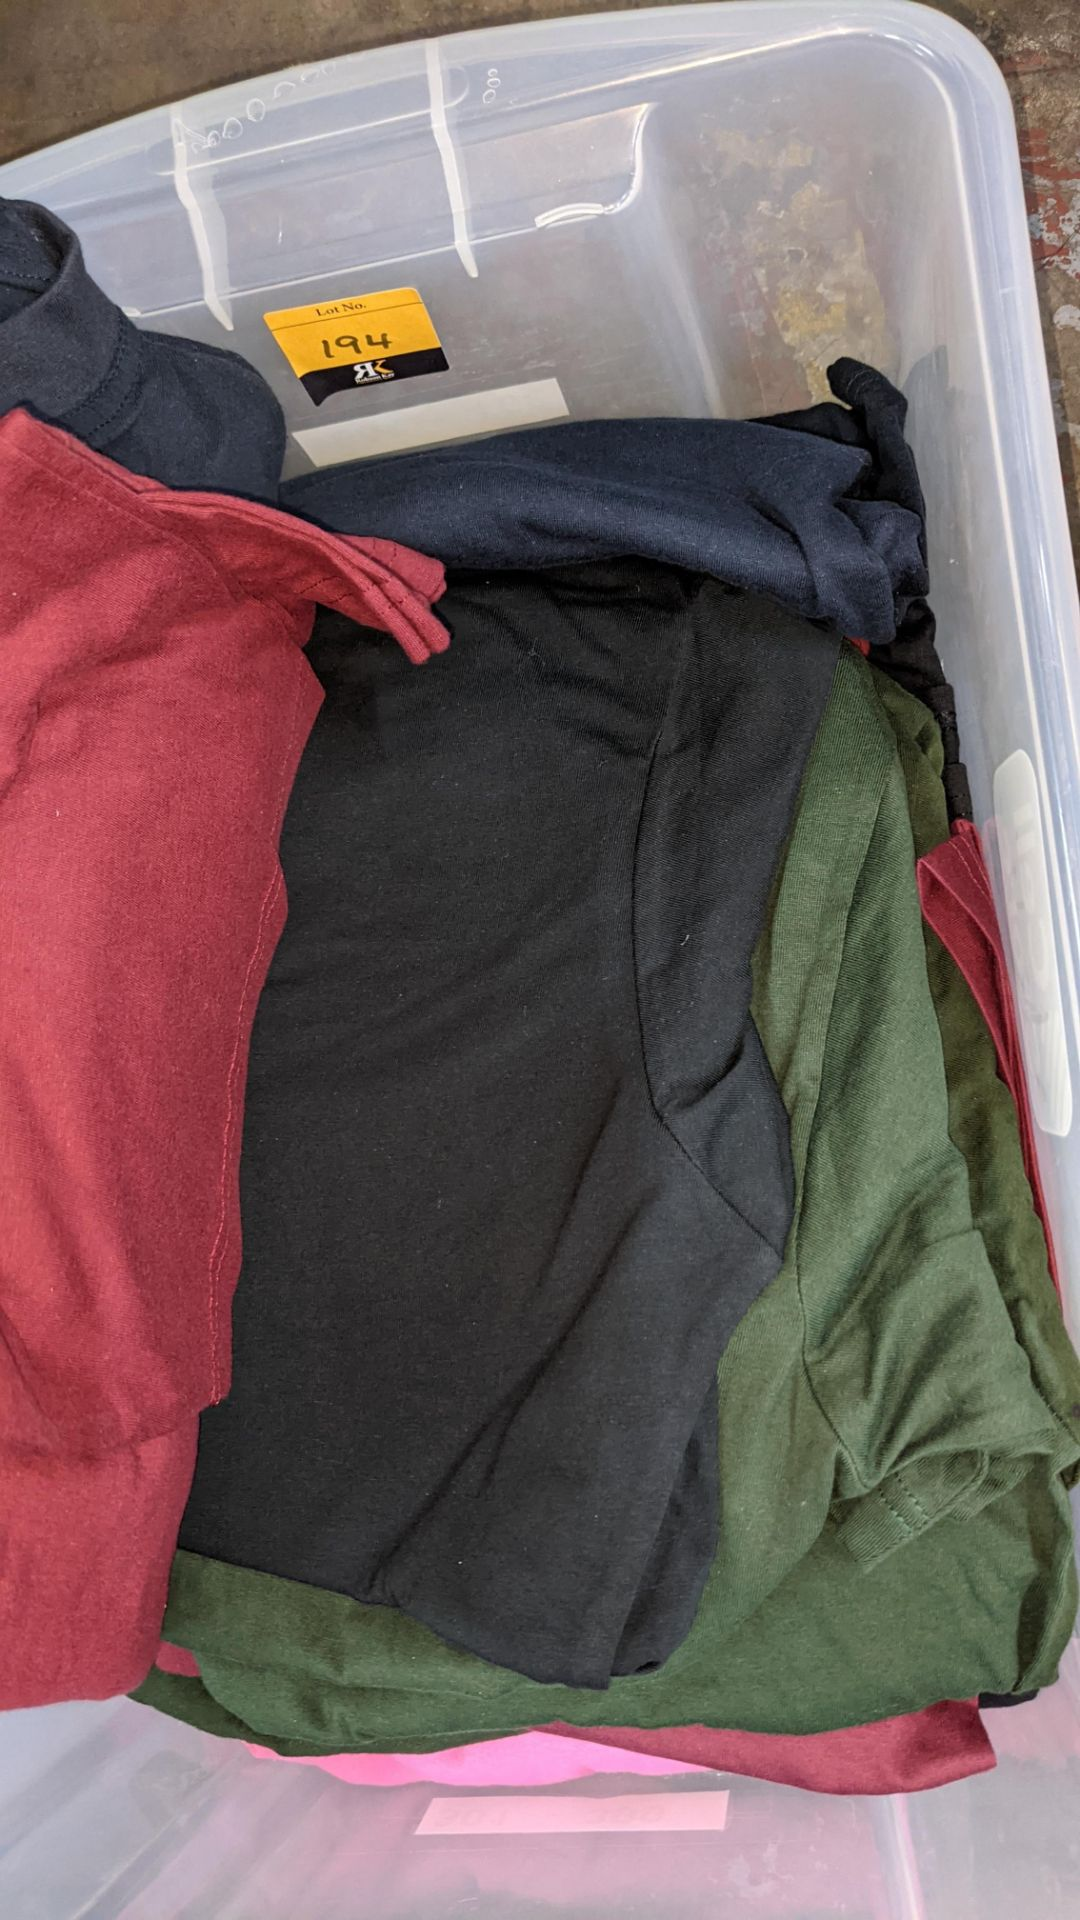 Approx 25 off Uneek assorted t-shirts - Image 4 of 7